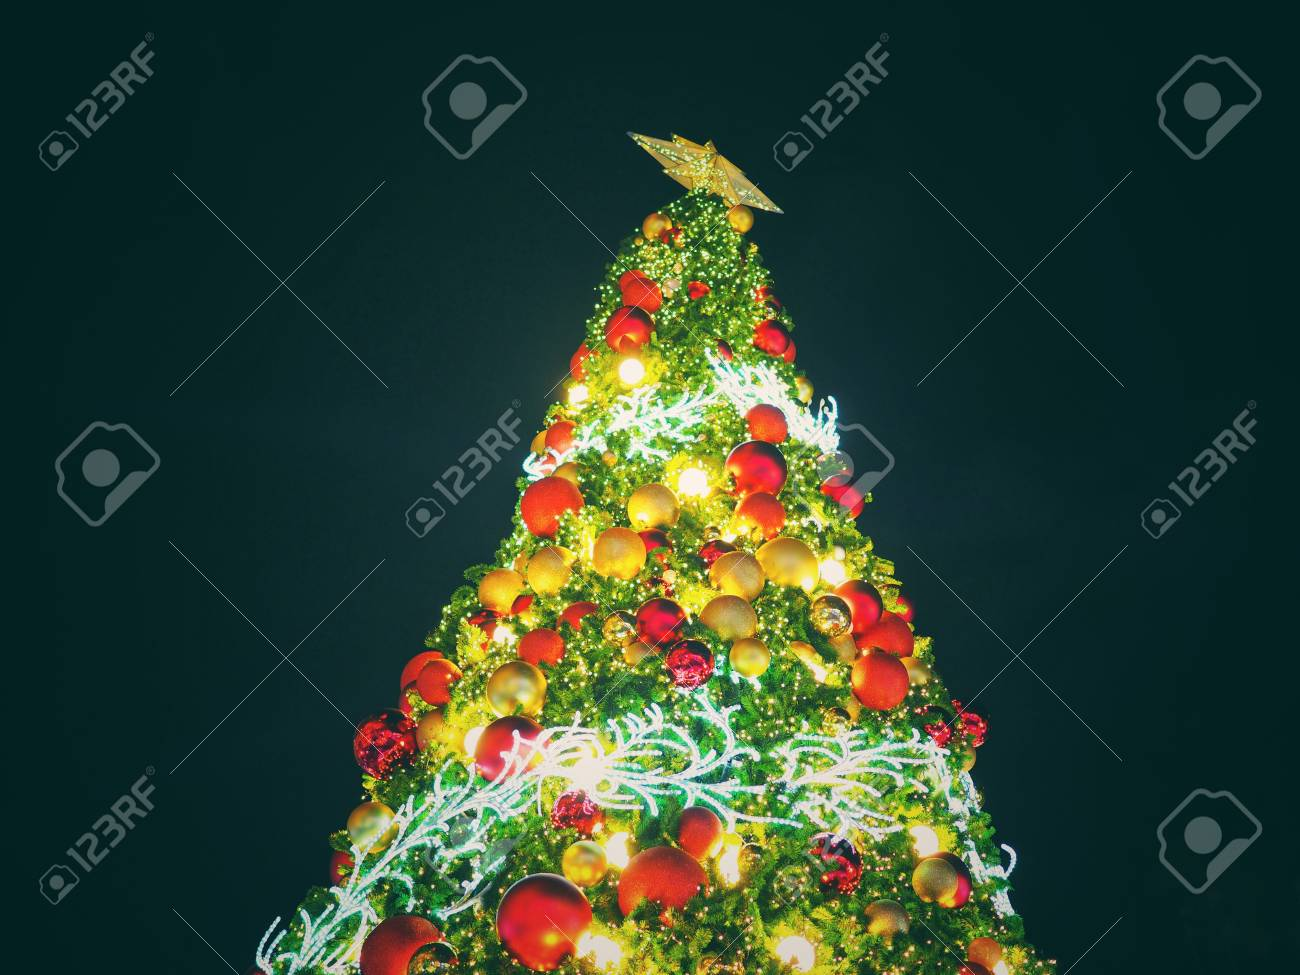 Big Christmas Tree Lighting At Night In Christmas Festival With ...